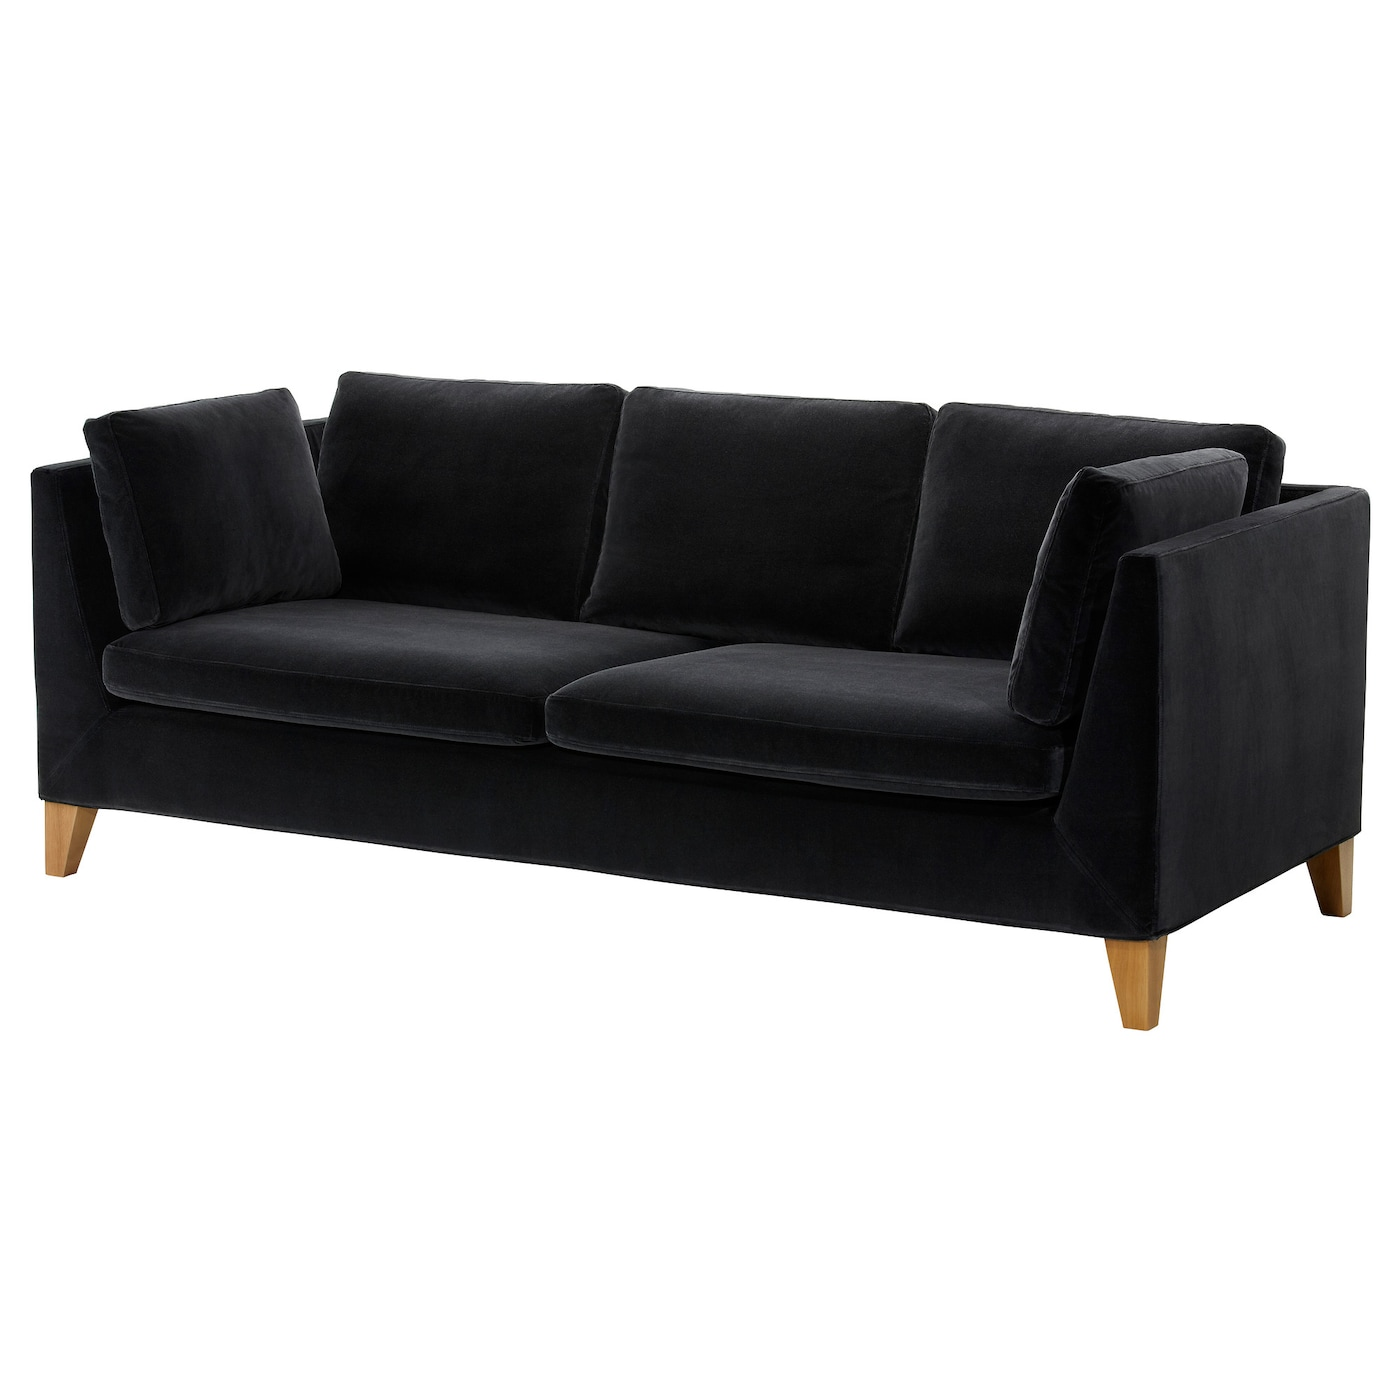 stockholm three seat sofa sandbacka black ikea. Black Bedroom Furniture Sets. Home Design Ideas